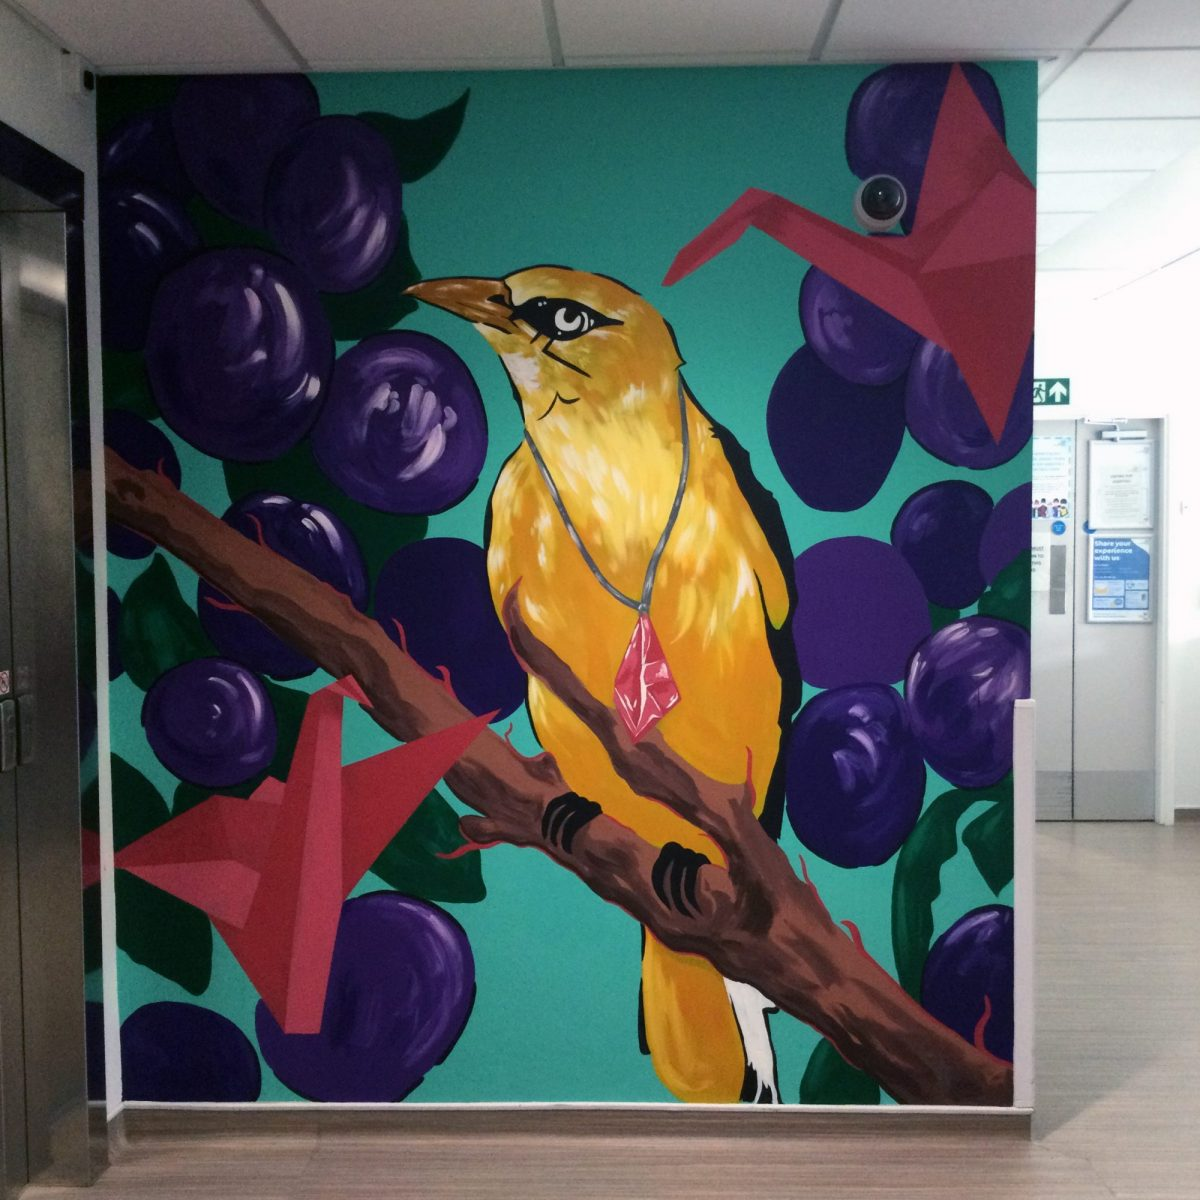 A mural featuring a bird sat on a branch, as well as origami birds, painted in the Wolfson Cystic Fibrosis Centre